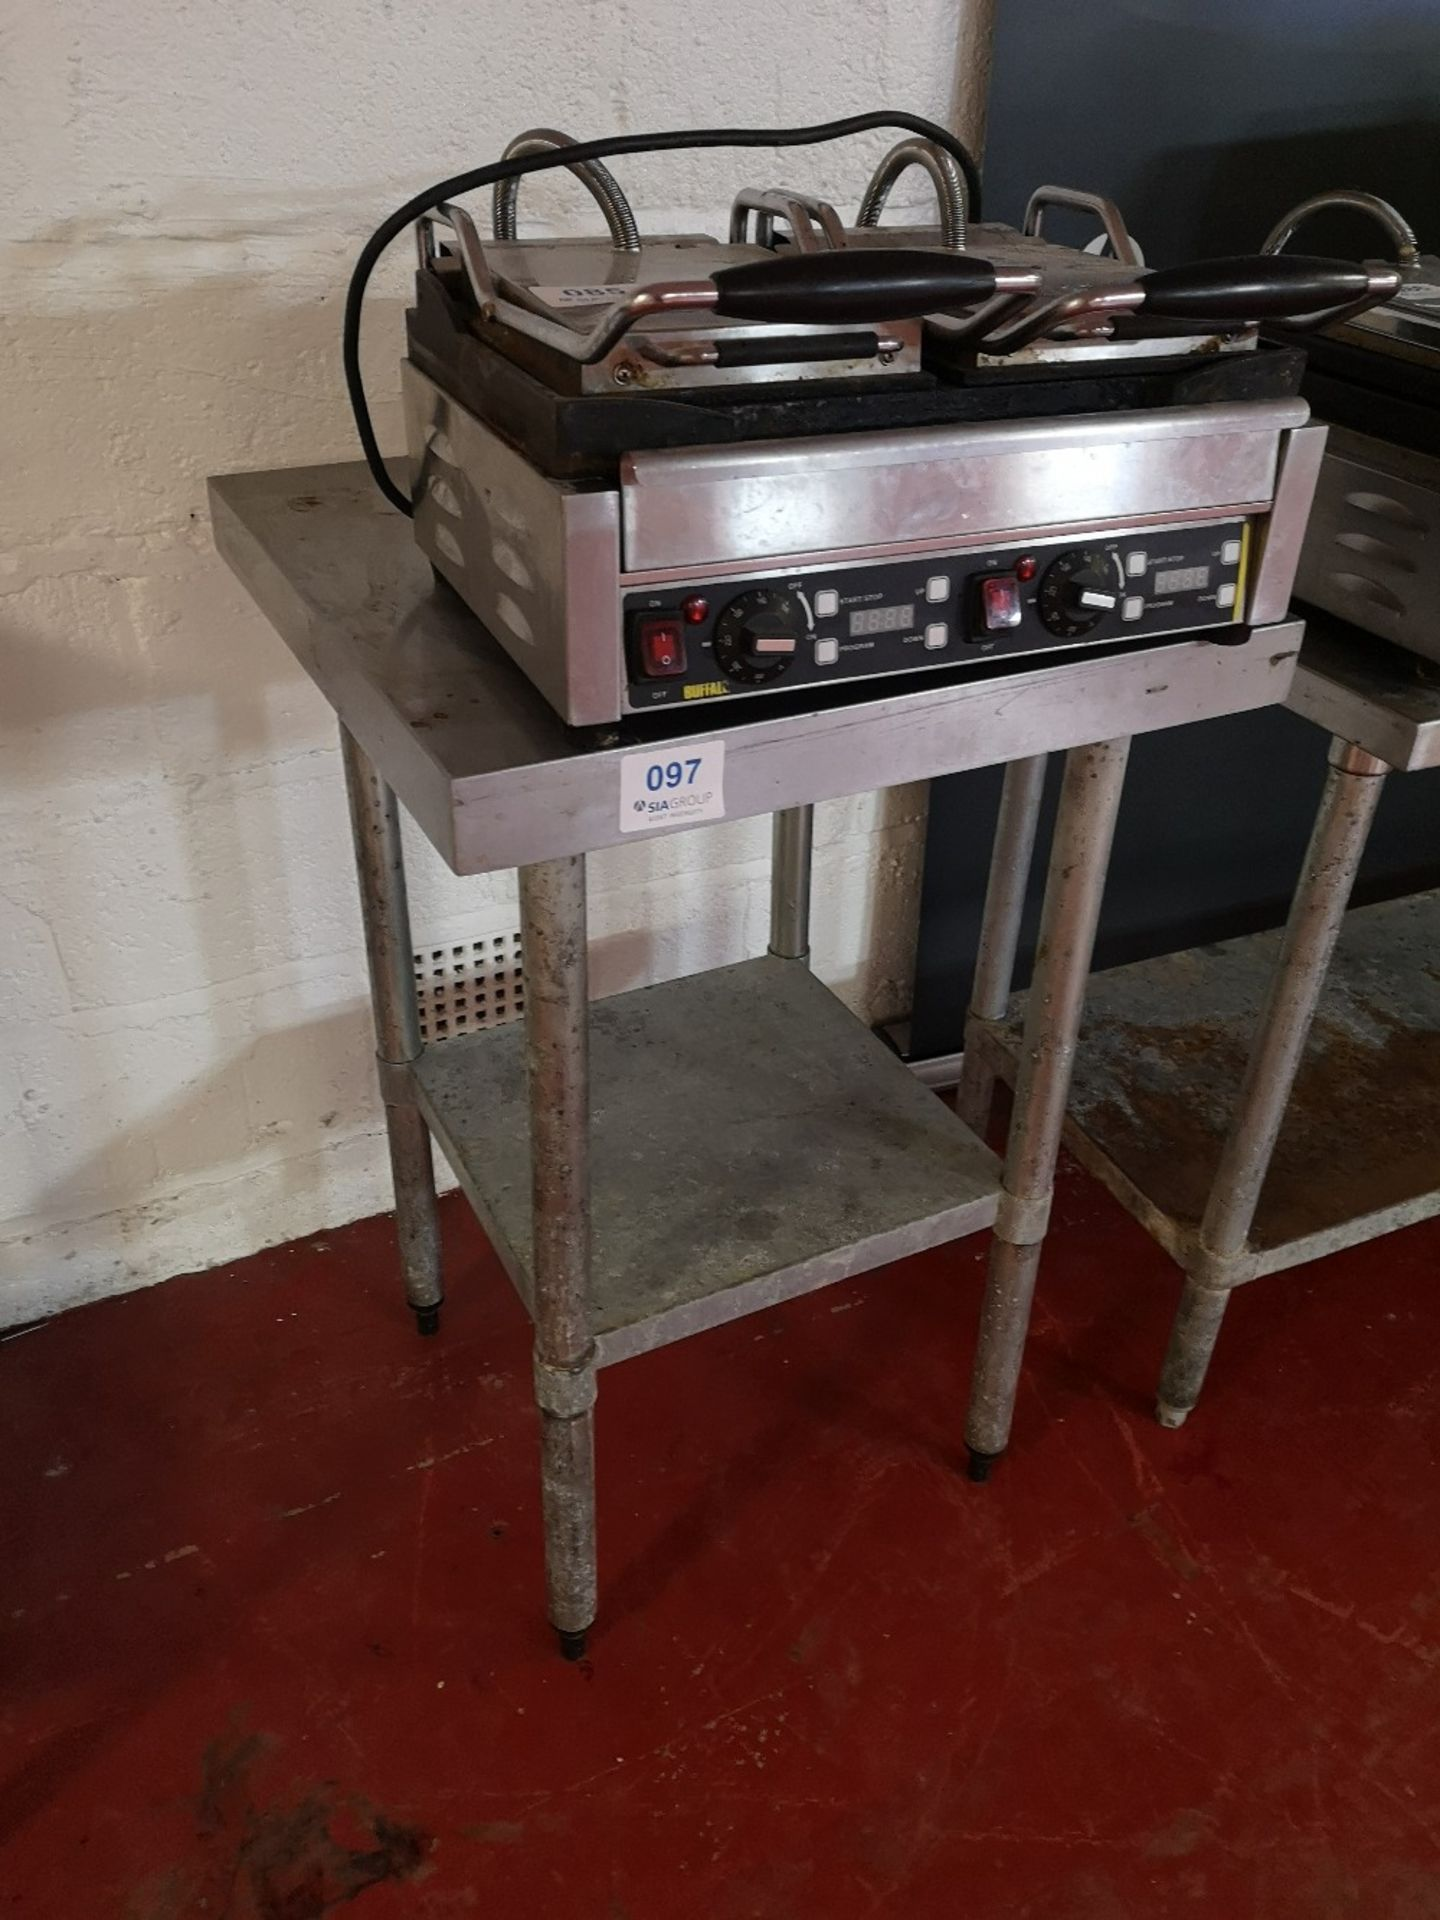 Vogue Stainless Steel 600mm Square Preparation Table - Image 2 of 2